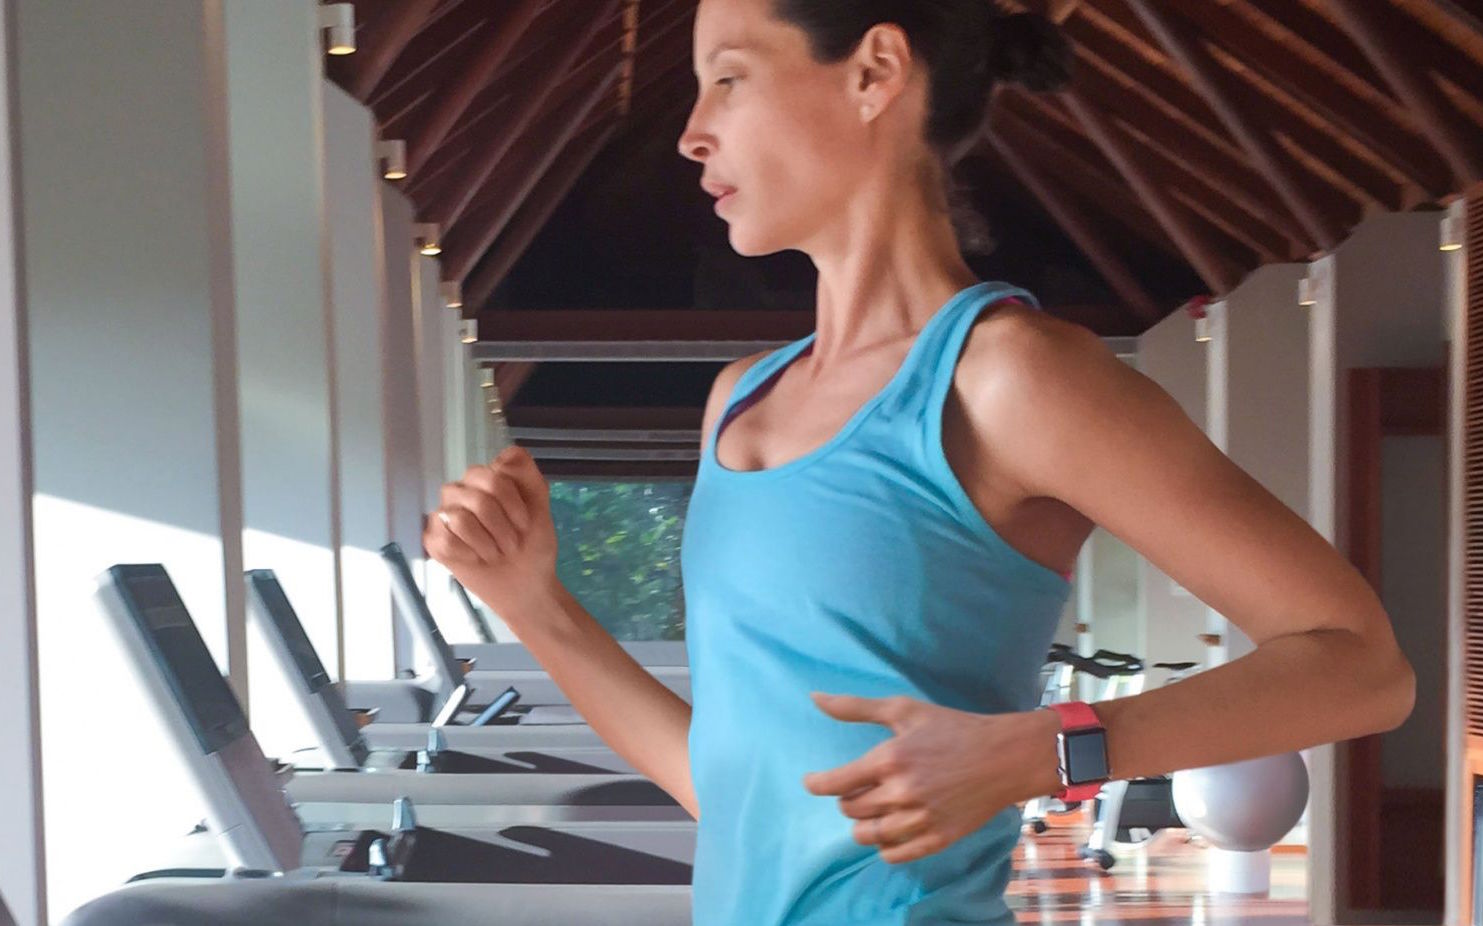 Apple Watch can learn your stride, according to Christy Turlington-Burns